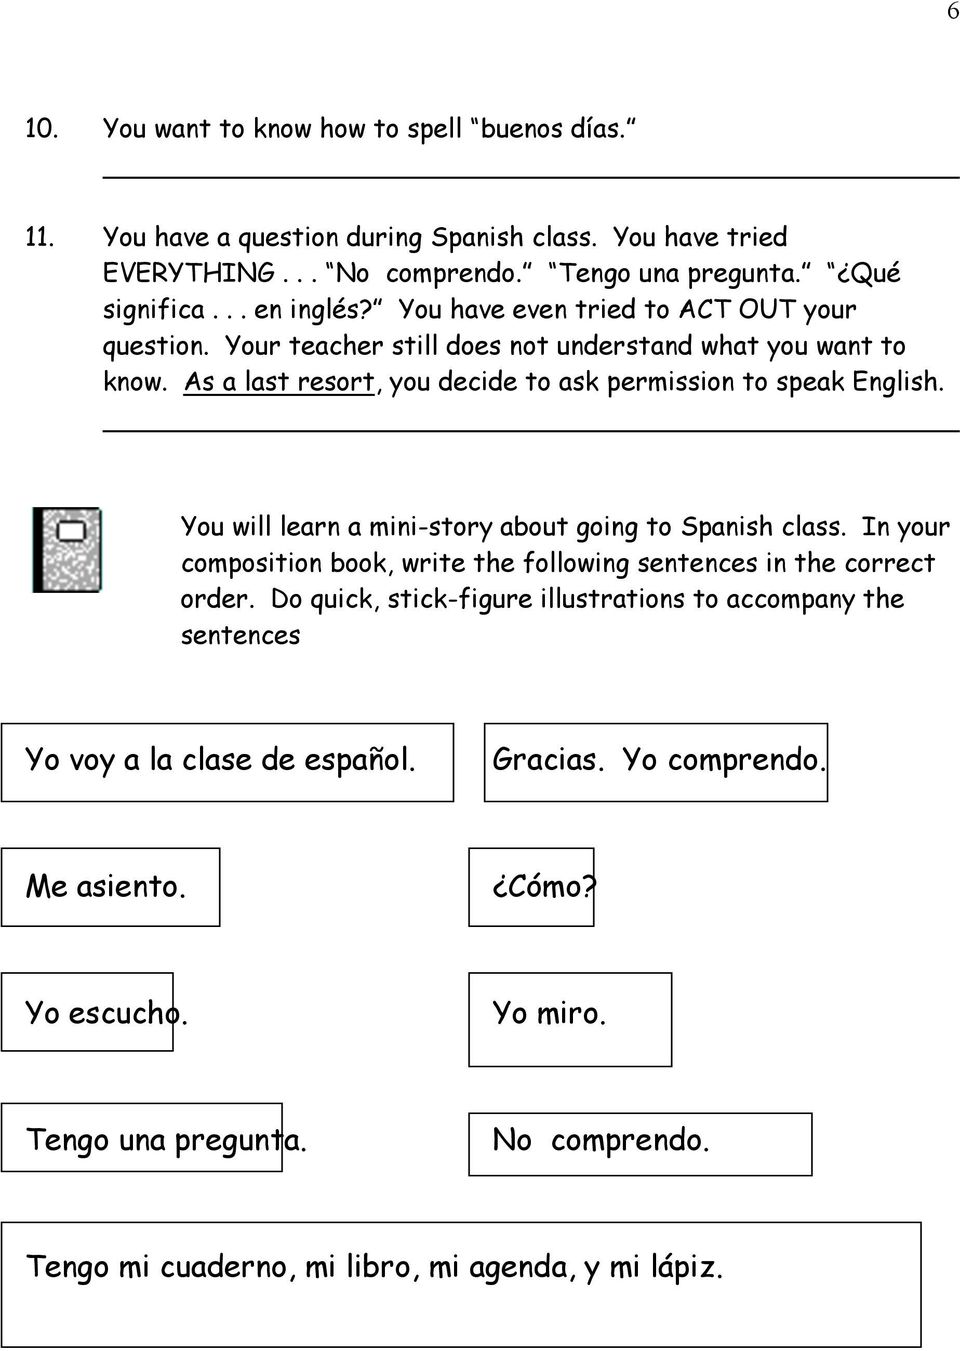 You will learn a mini-story about going to Spanish class. In your composition book, write the following sentences in the correct order.